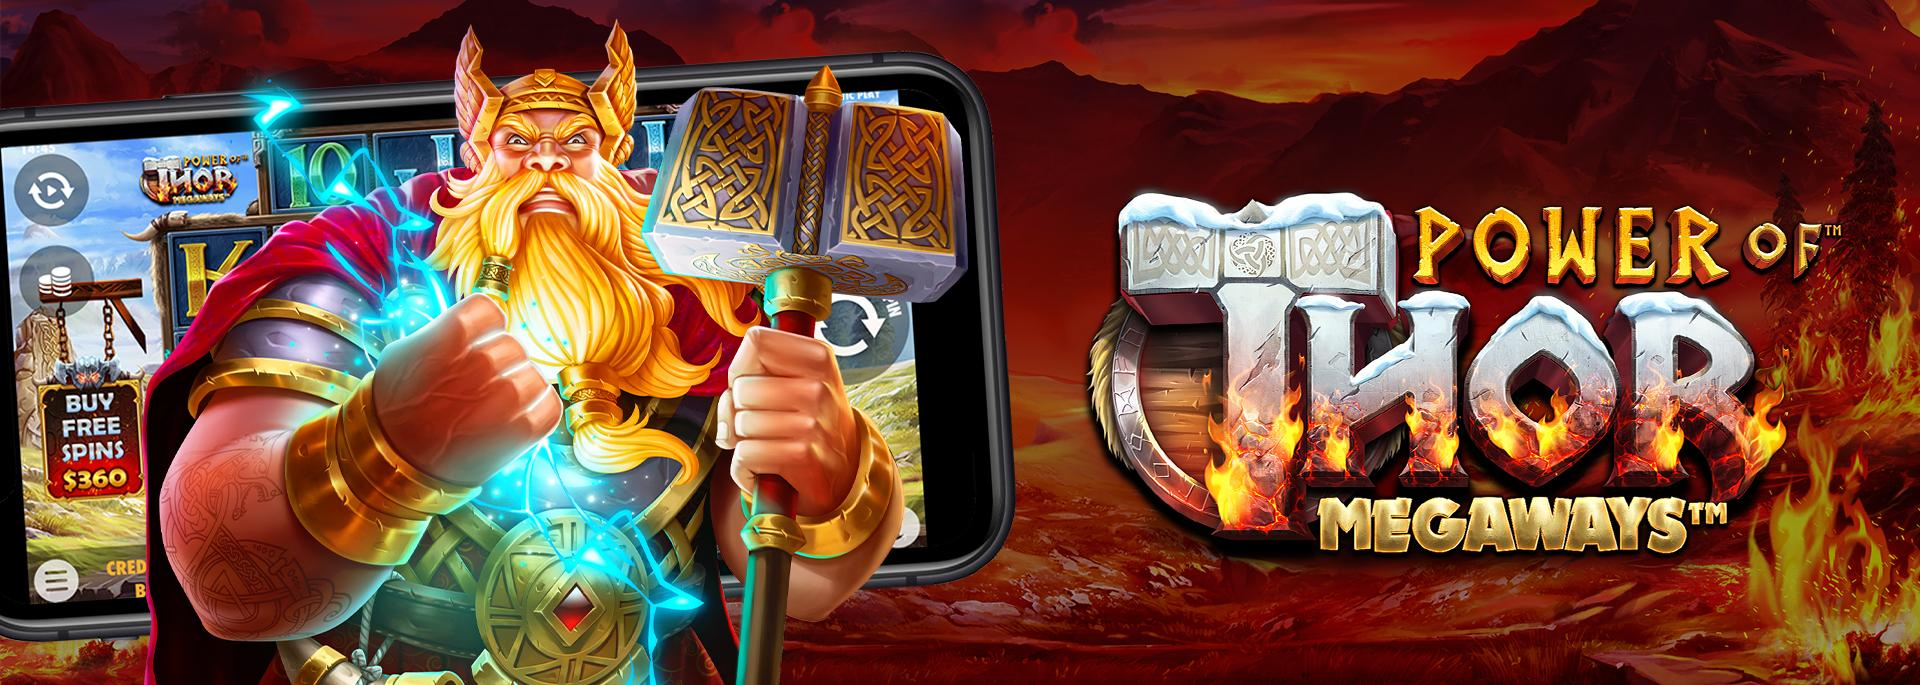 Bets sports thor casino 566875